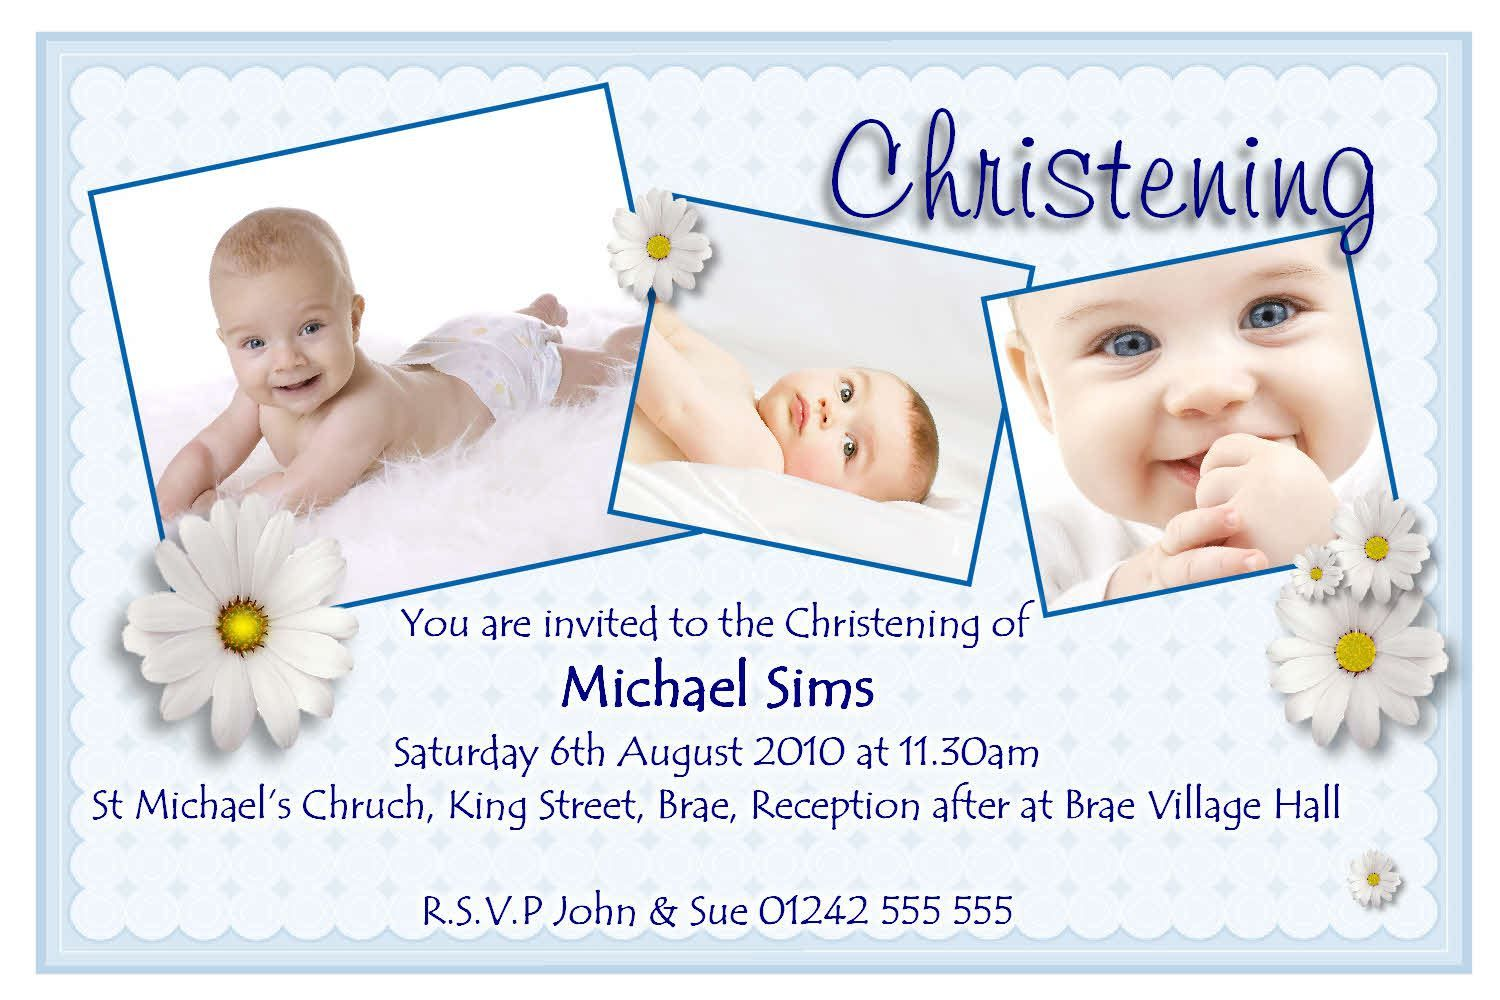 Invitation Card For Christening Invitation Card For